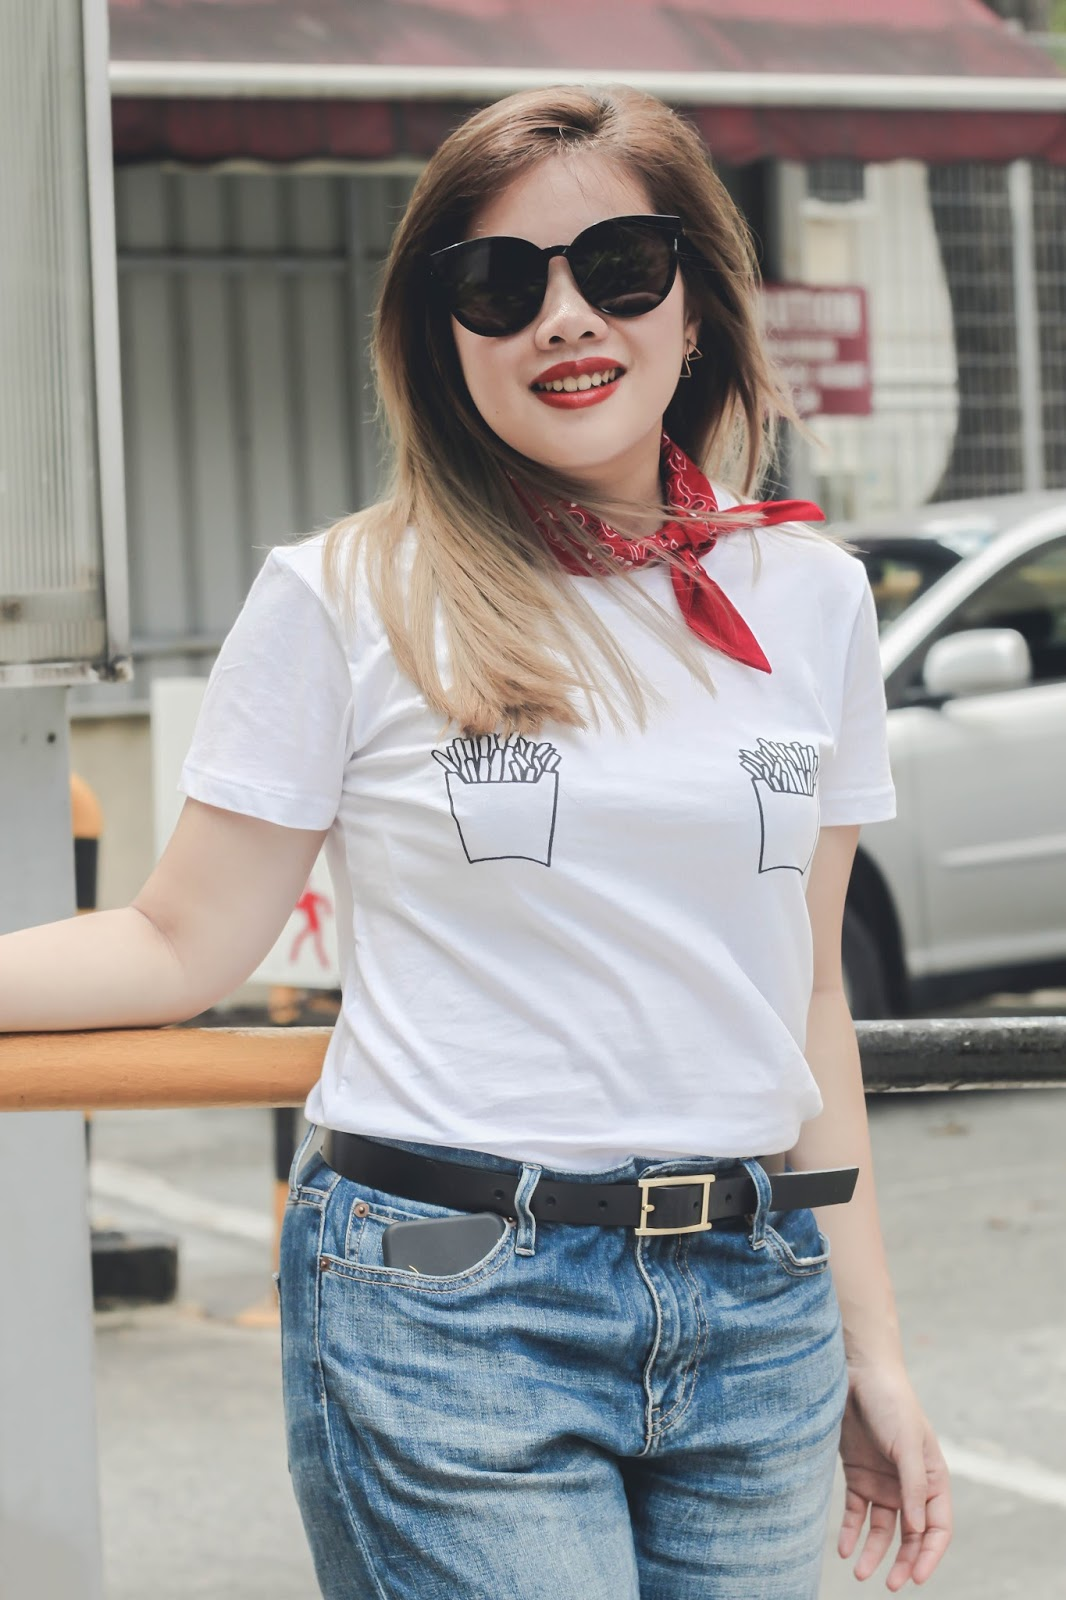 singapore blogger street style look book fashion bandana photography outfit denim tees